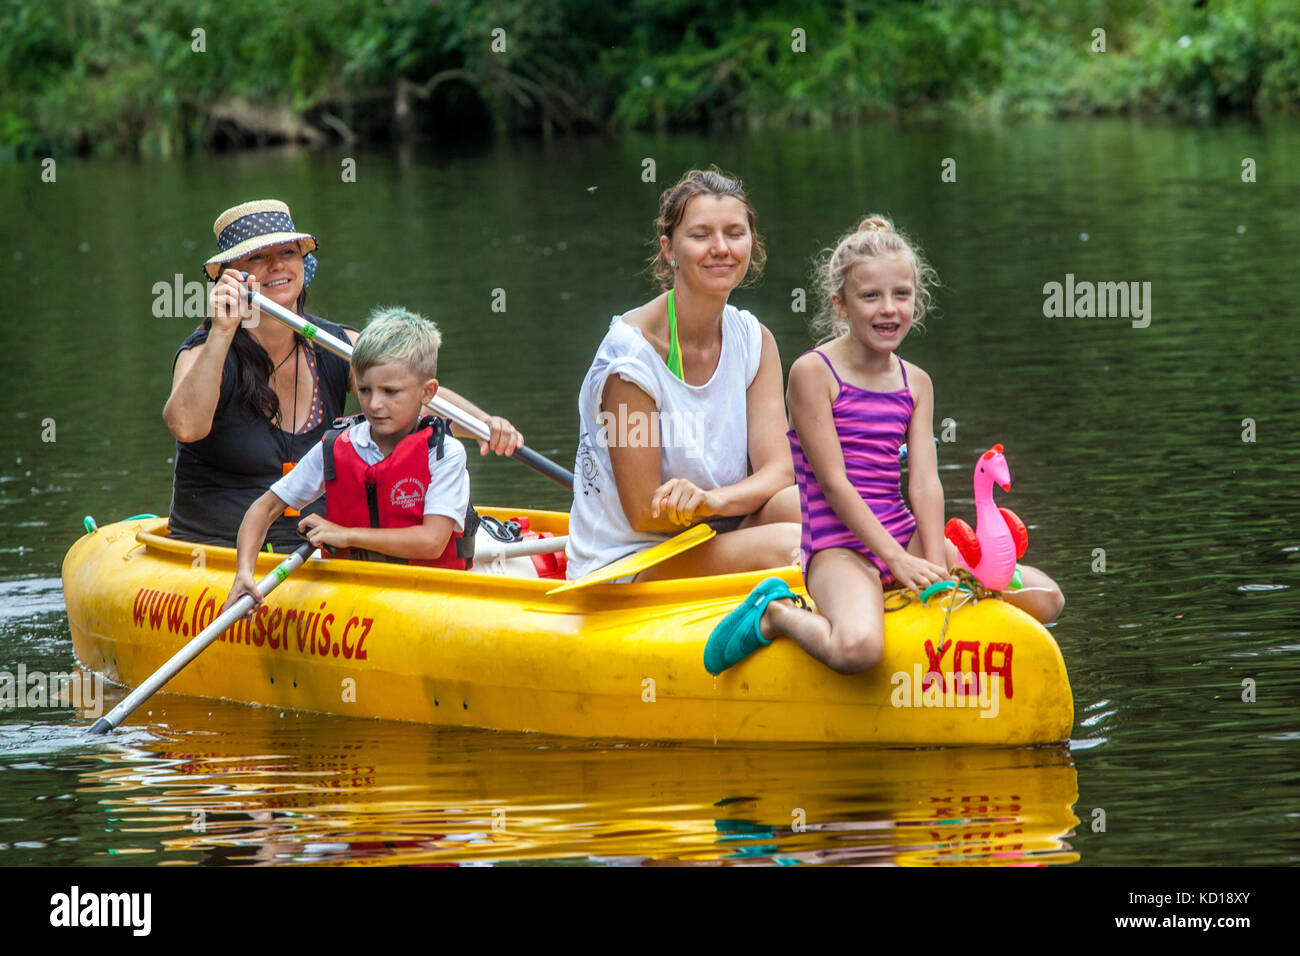 Canoe with three generation paddlers going down by  Otava river, Vacations in summer, Czech Republic - Stock Image